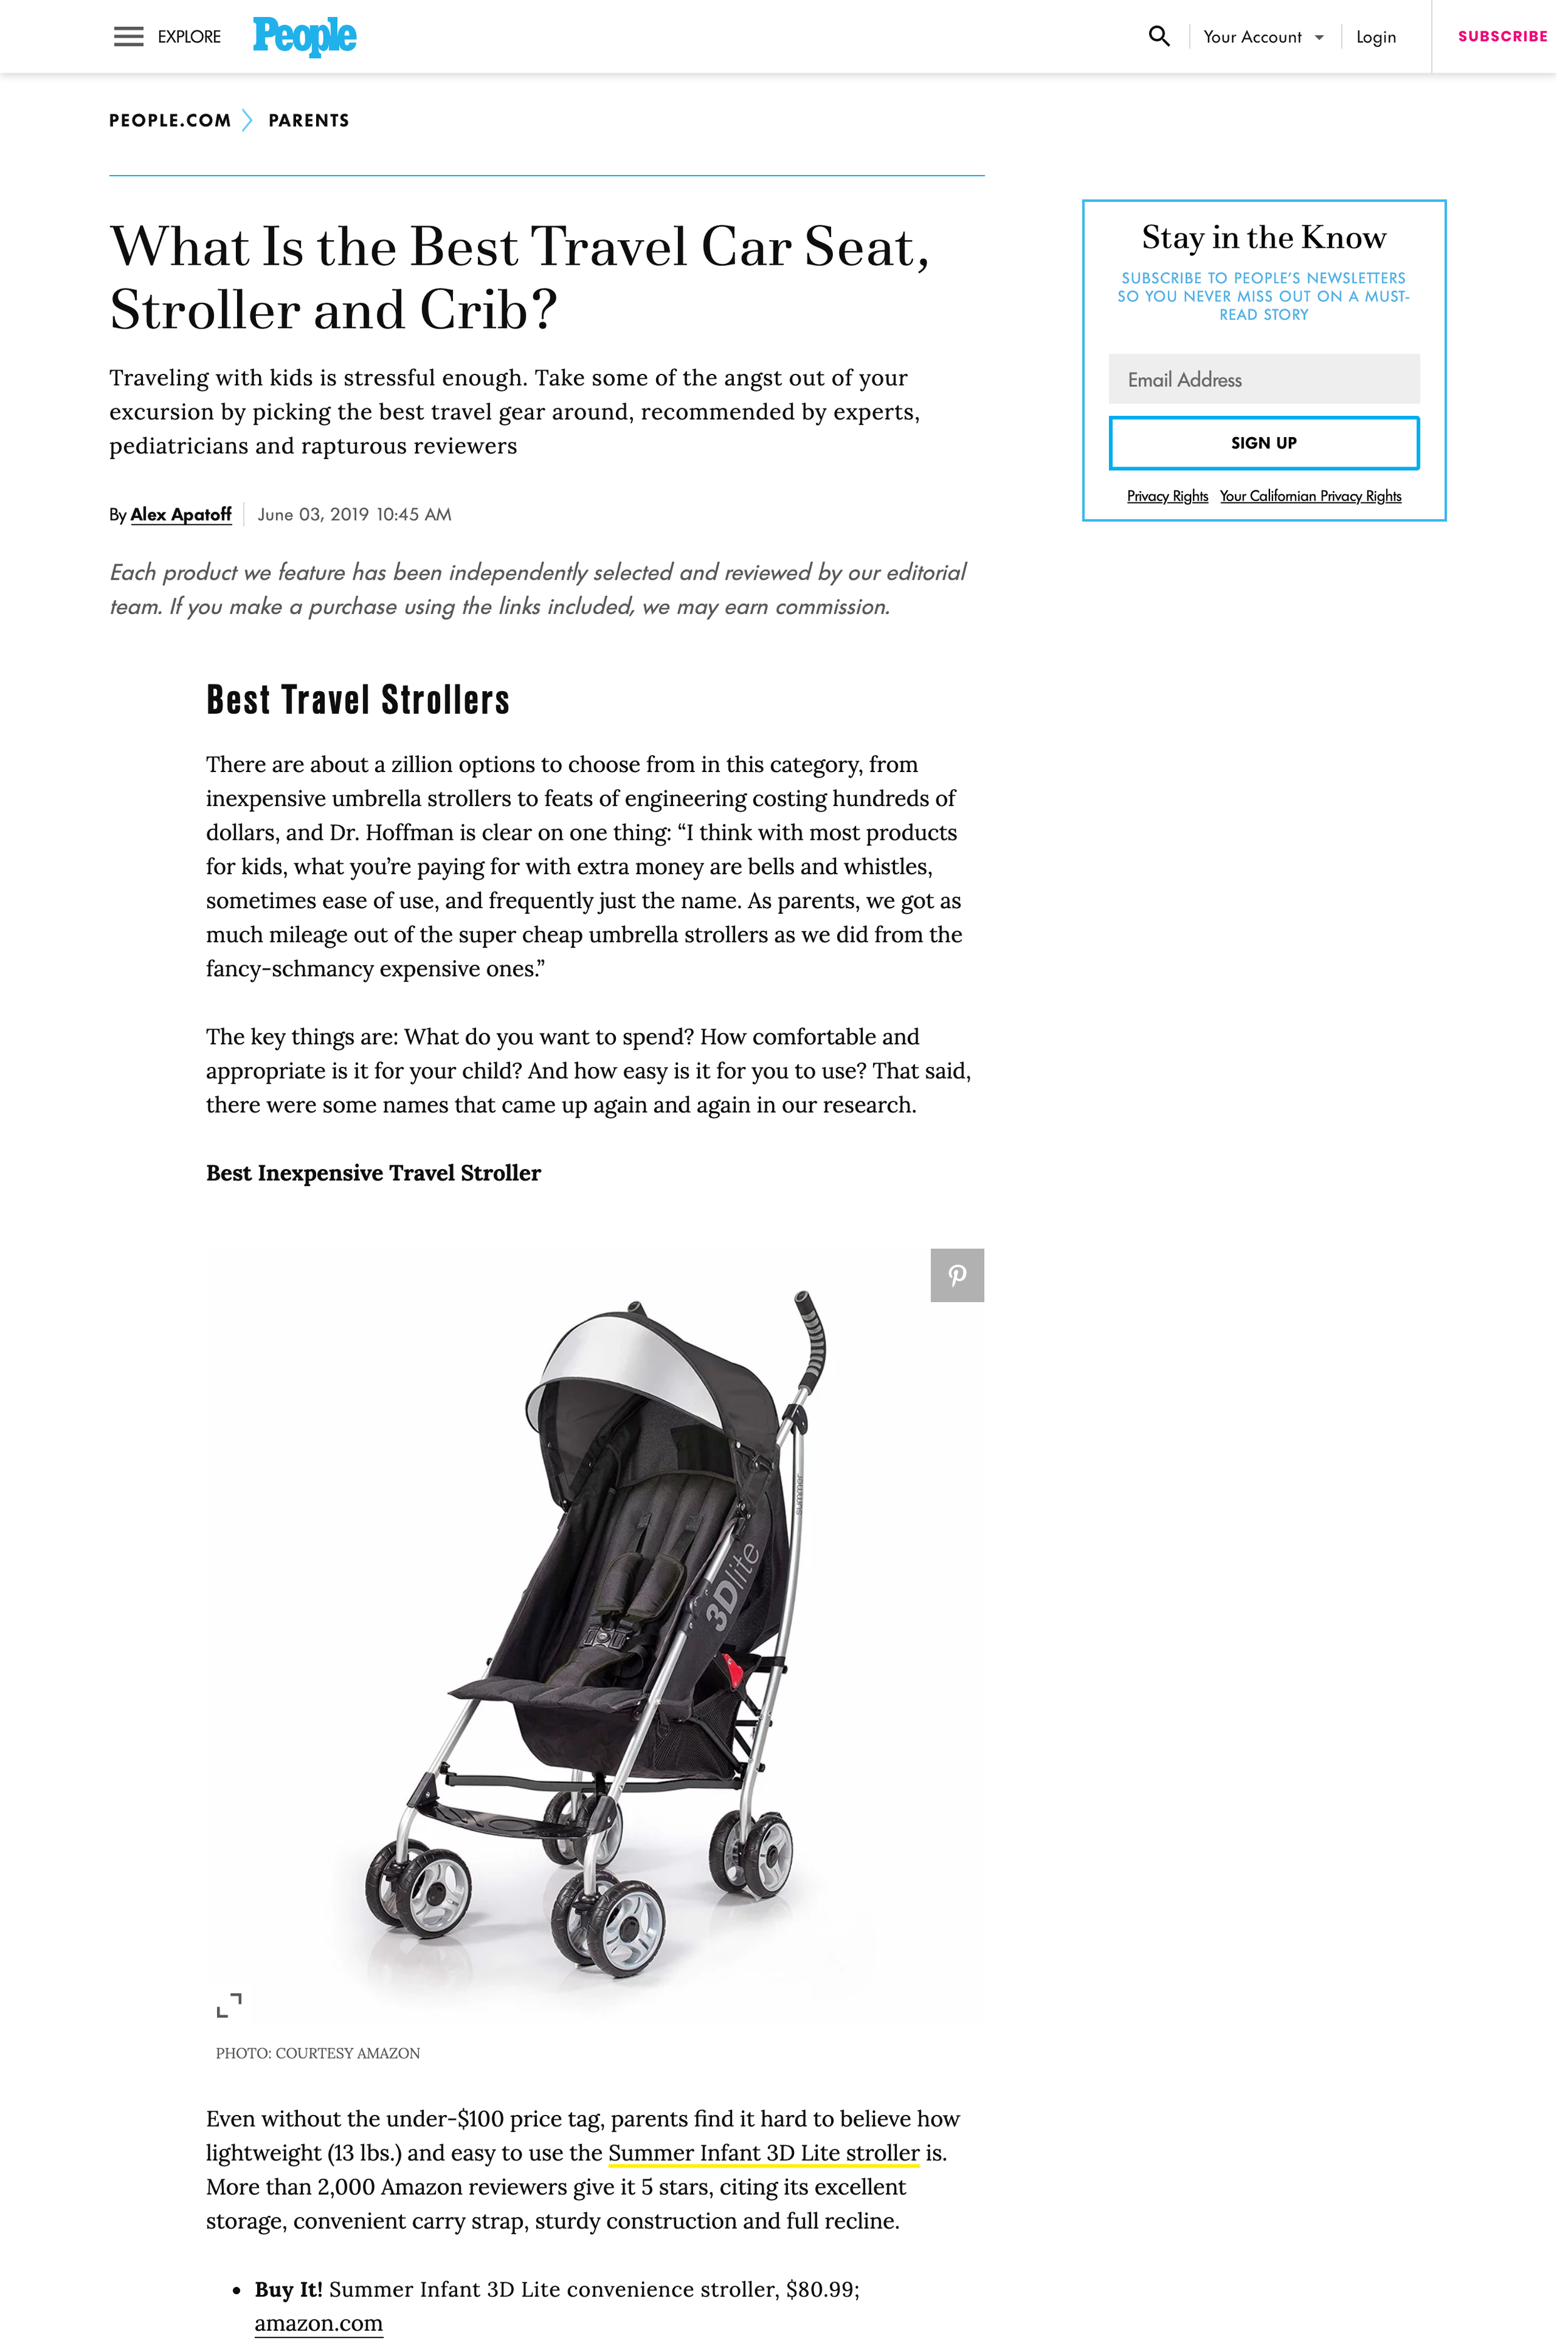 2019.06.03_(People) Parenting_Summer 3Dlite Convenience Stroller_cropped 2x3.png